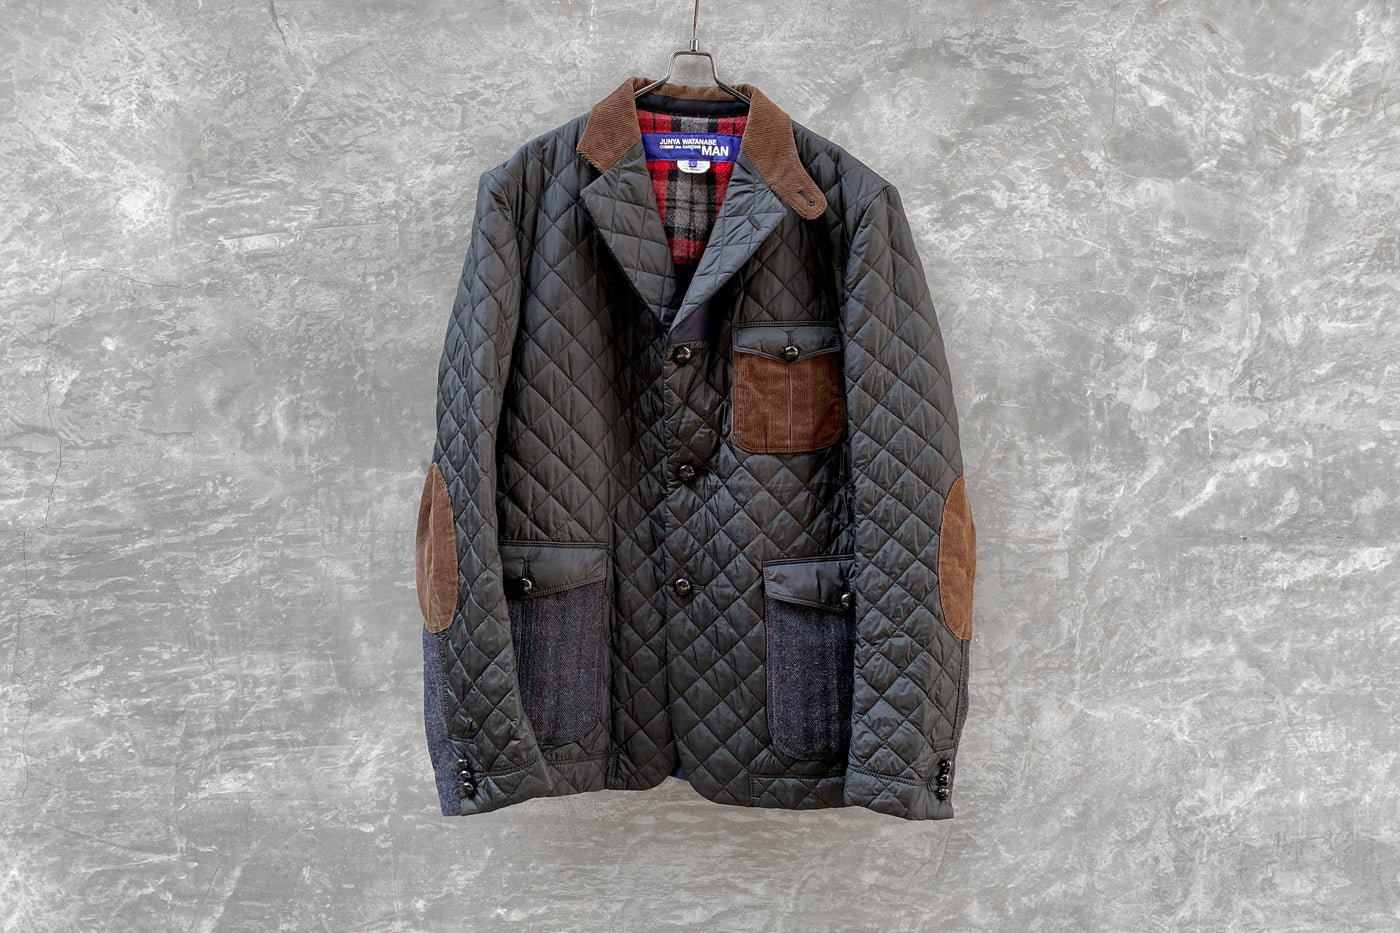 Junya Watanabe MAN Comme Des Garcons Patchwork Quilted Hunting Jacket AD2014